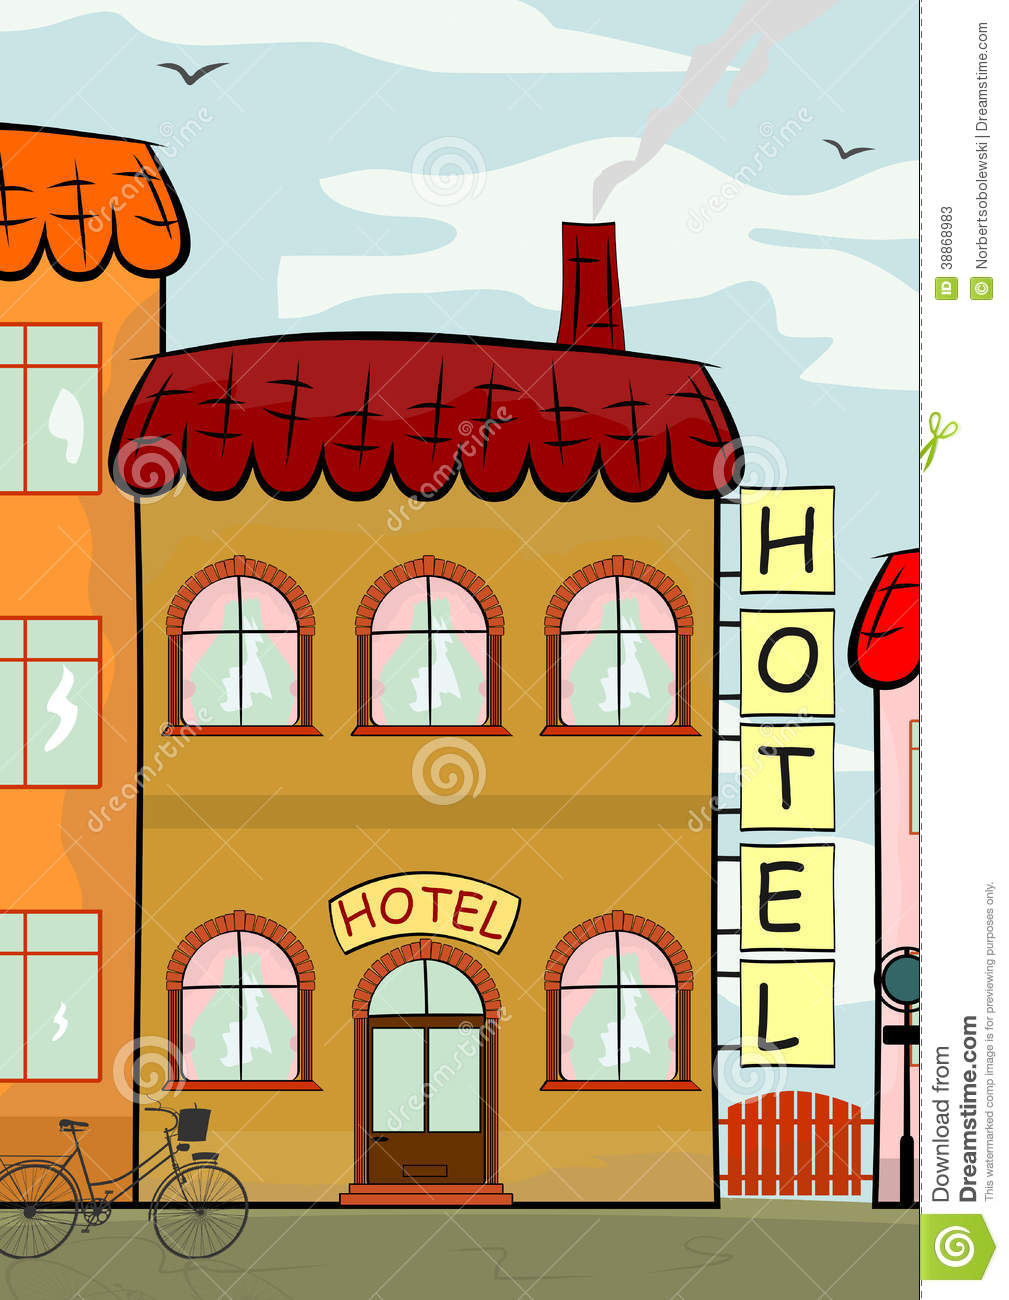 Background with cartoon hotel standing among other buildings.: www.dreamstime.com/stock-photos-hotel-background-cartoon-standing...